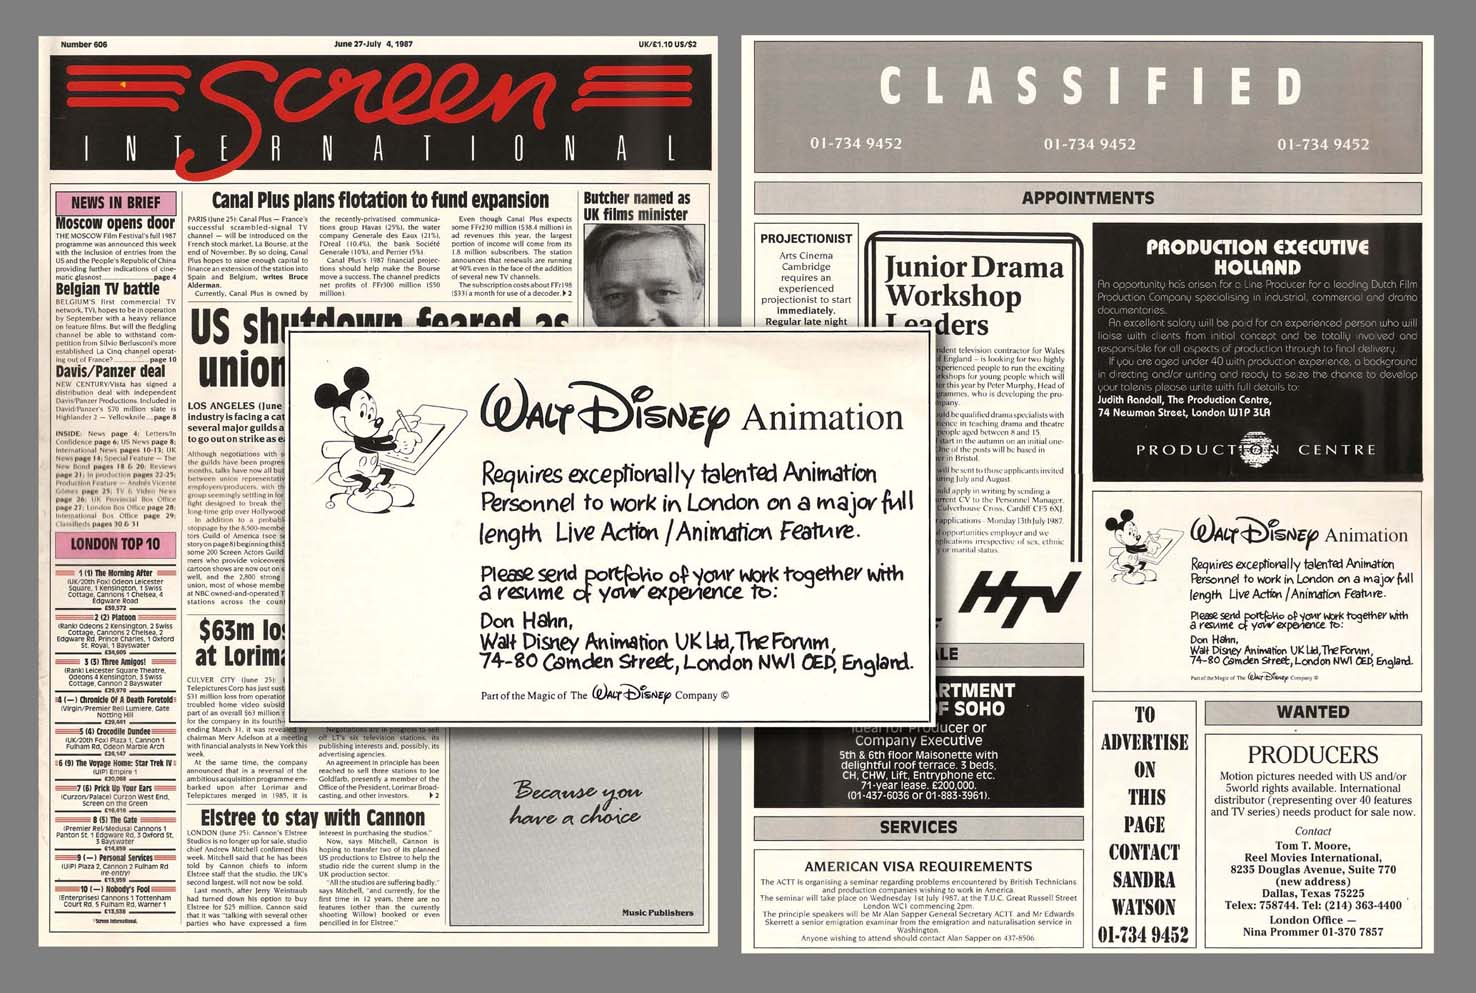 resume Resume Rabbit forum resume rabbit fraser maclean animation insider wally the insider